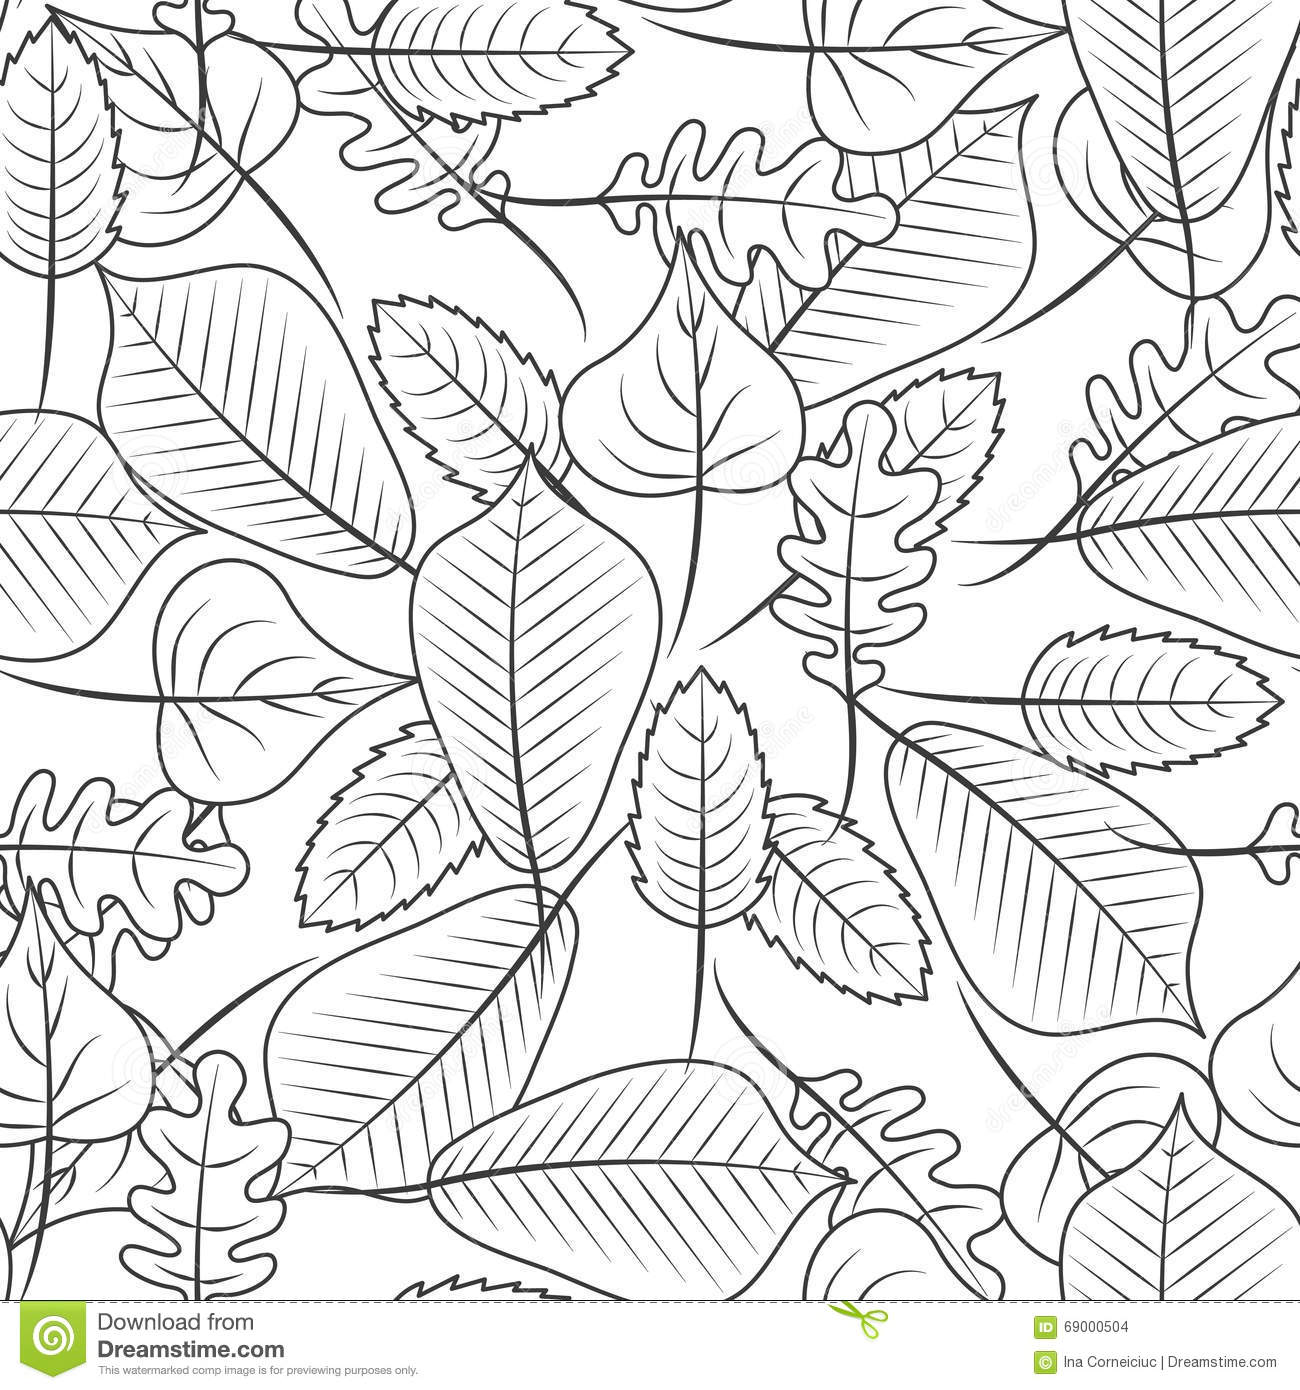 Black And White Coloring Leaves Seamless Pattern. Stock ...  Black And White...